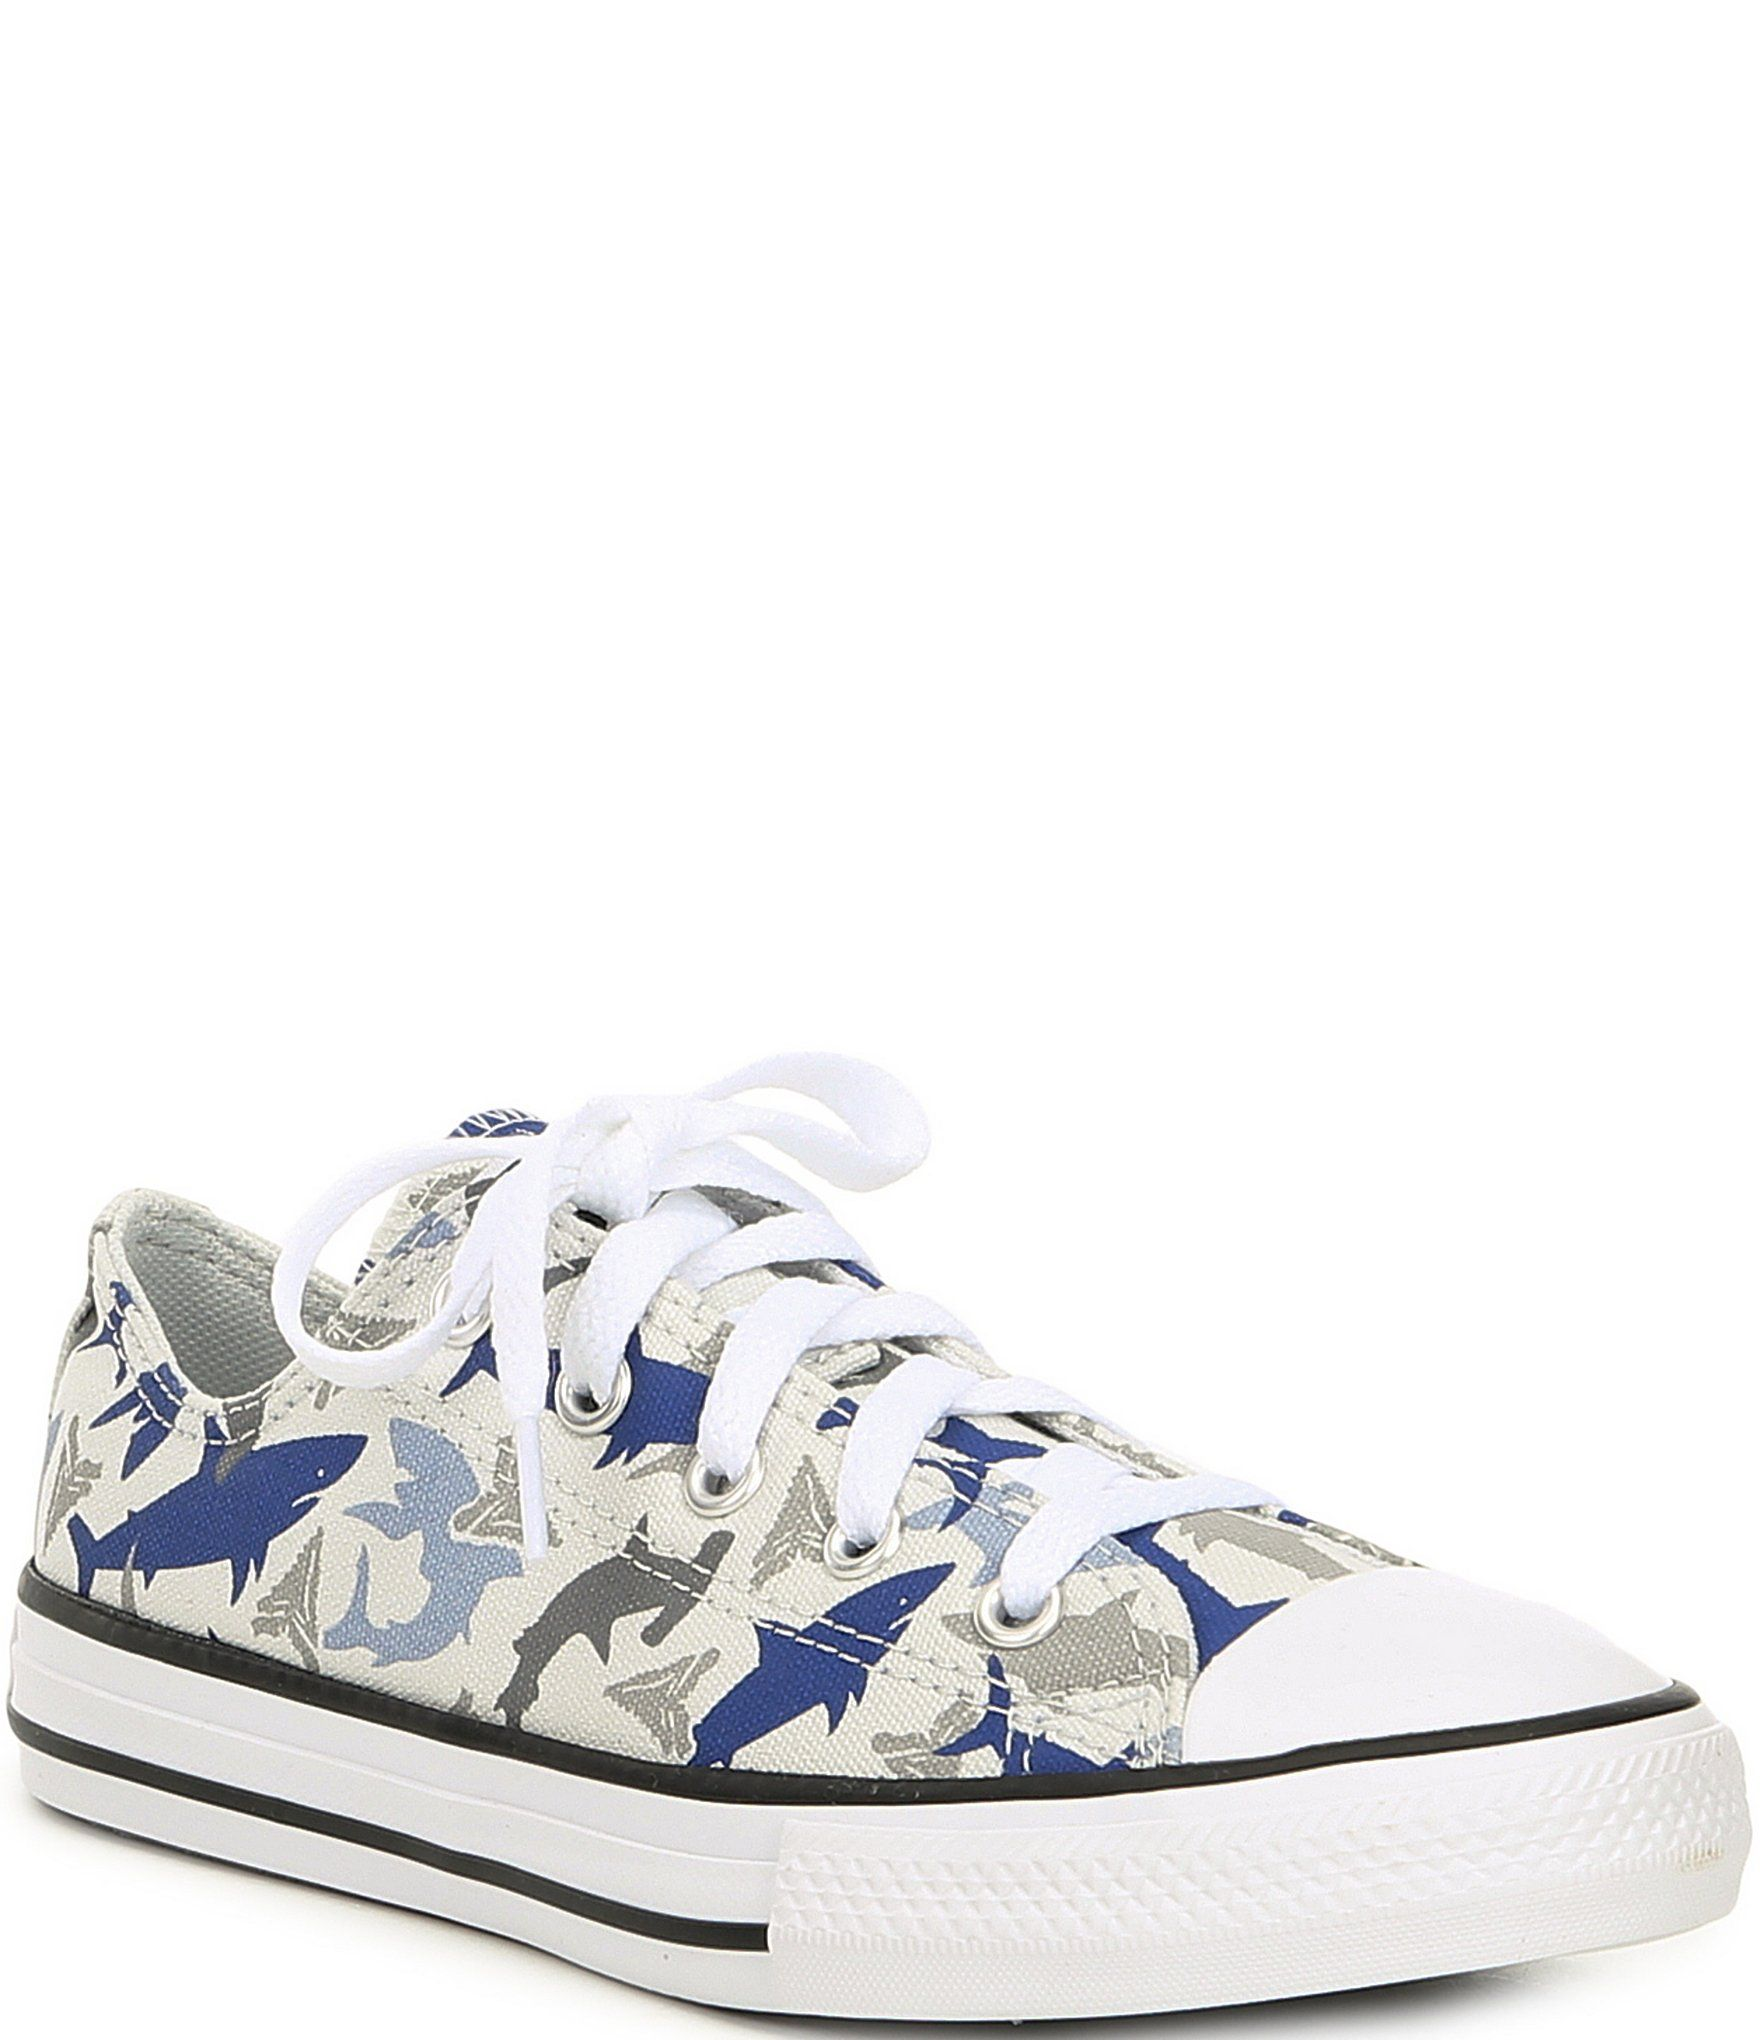 Converse Boys' Chuck Taylor All Star Shark Bite Printed Canvas Oxfords Youth - 3M Youth